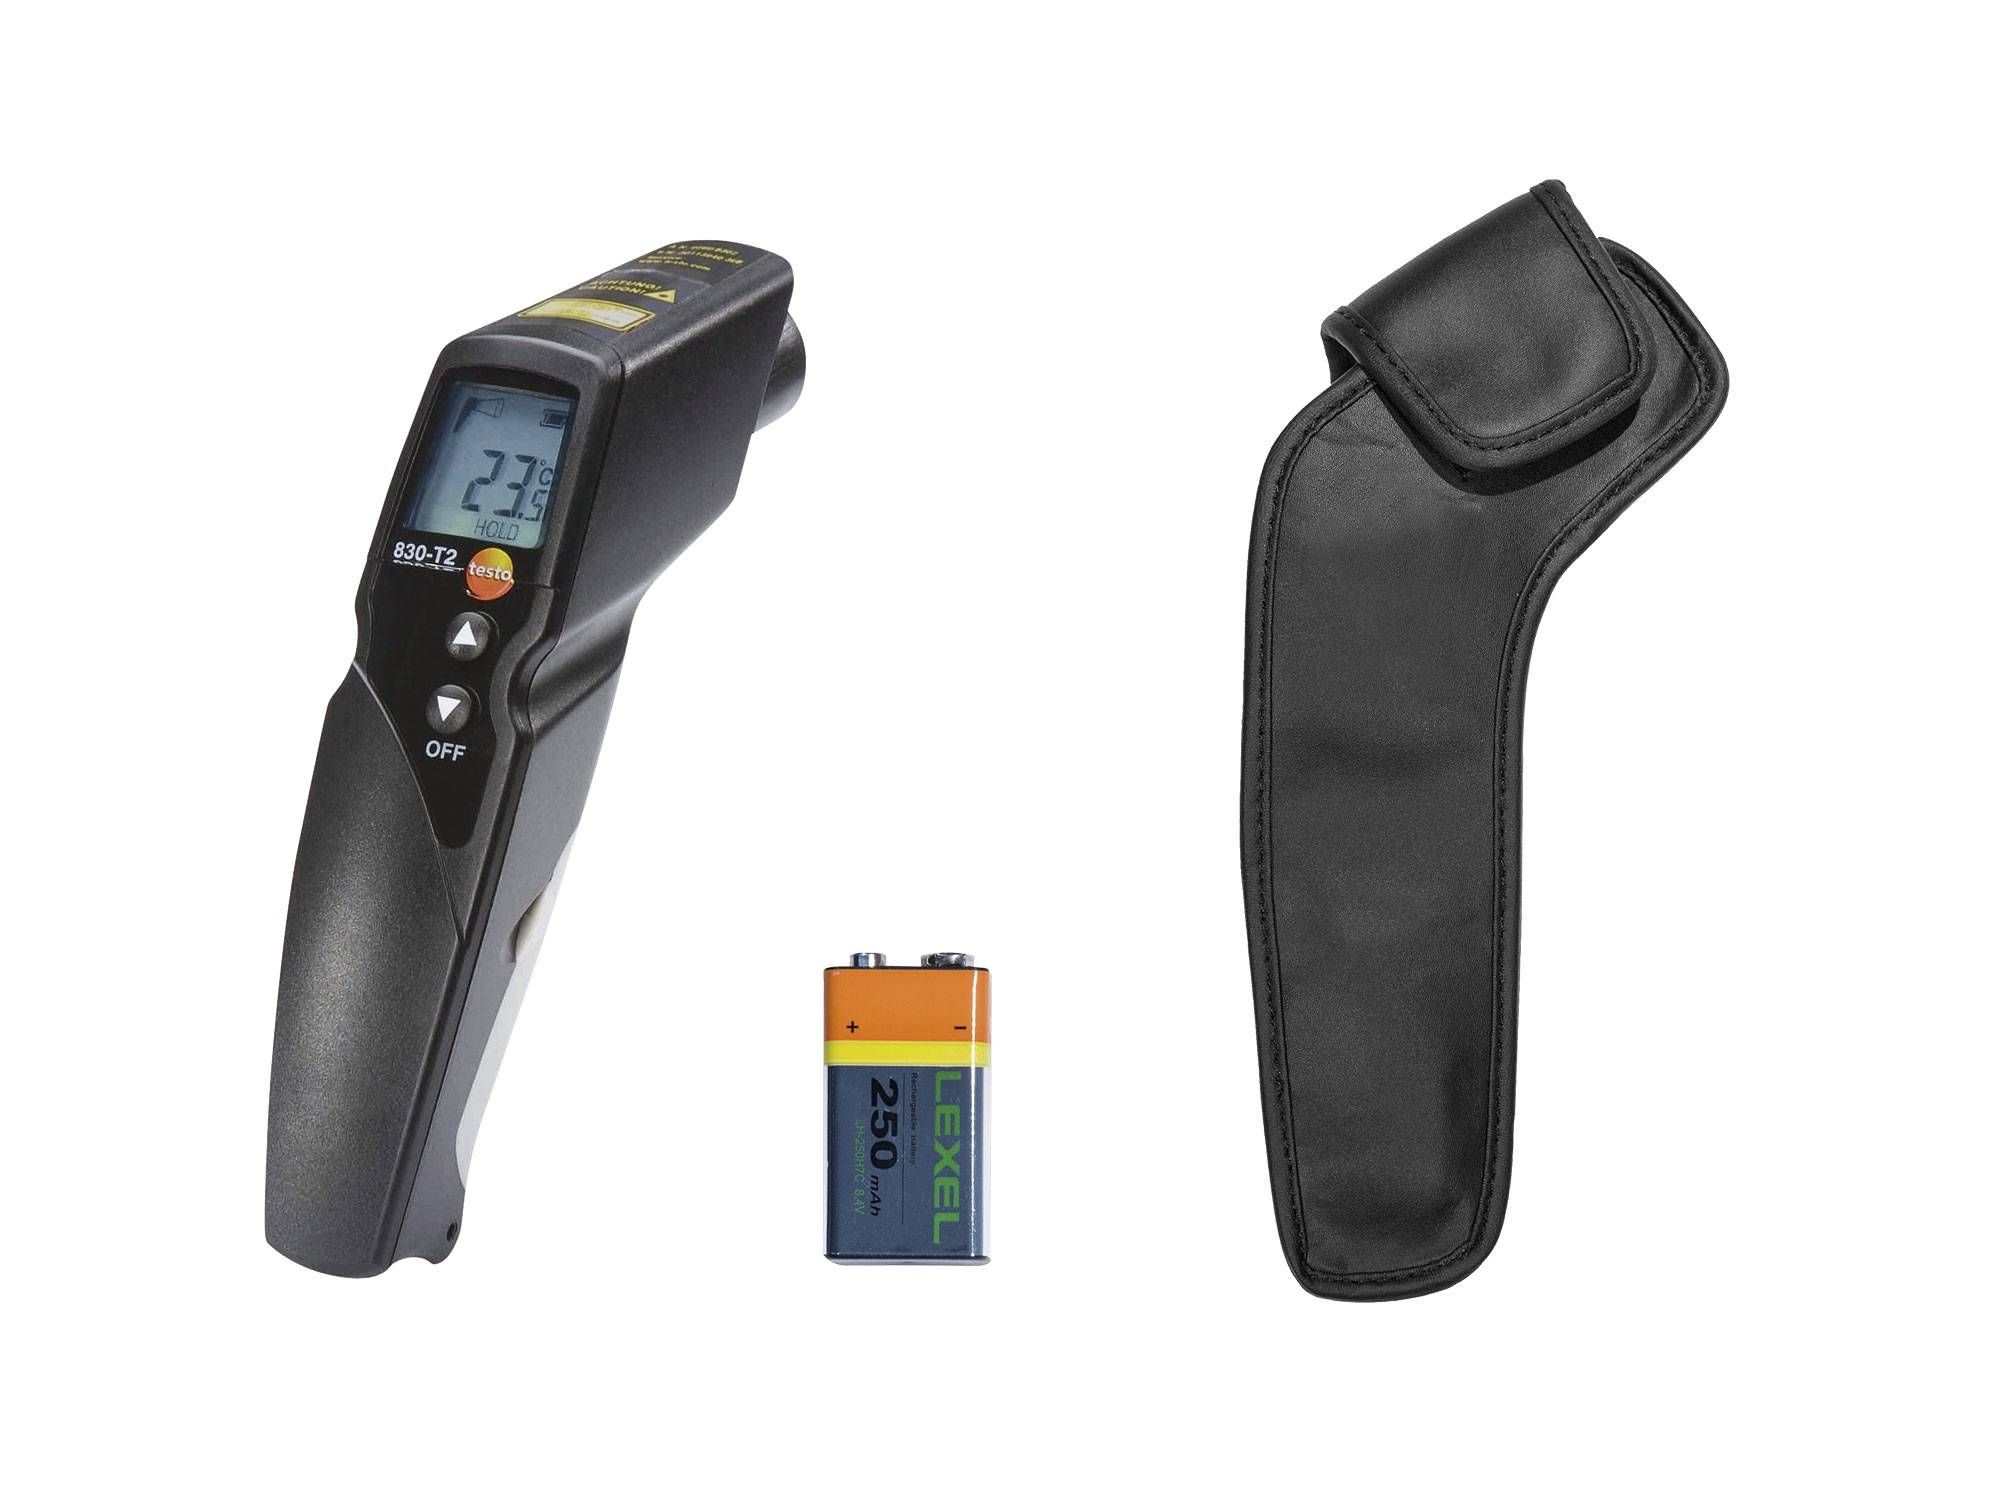 Infrared thermometer testo 830-T2 kit